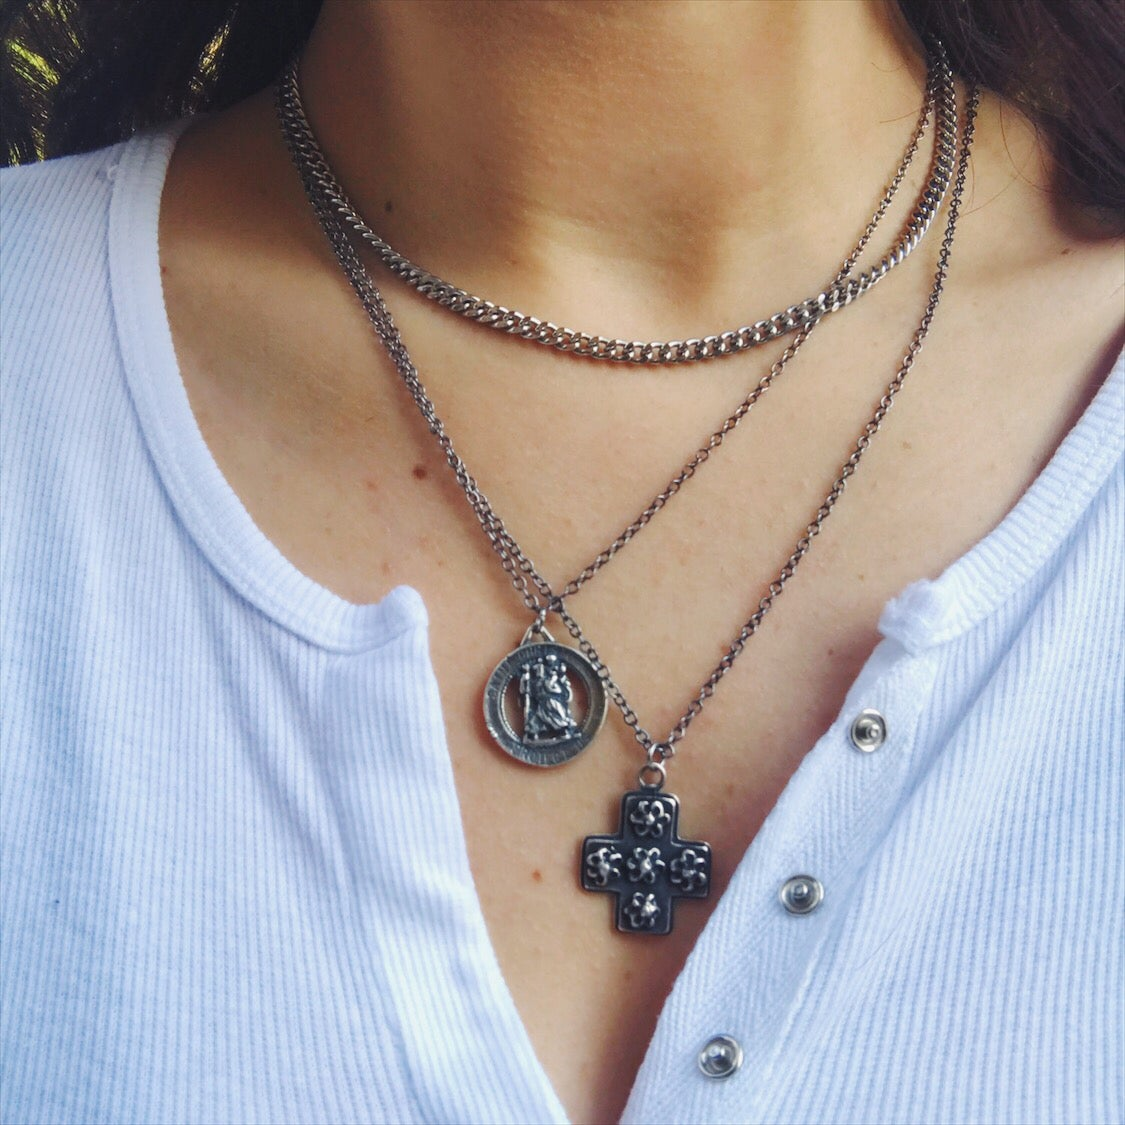 Image of Saint Christopher Necklace